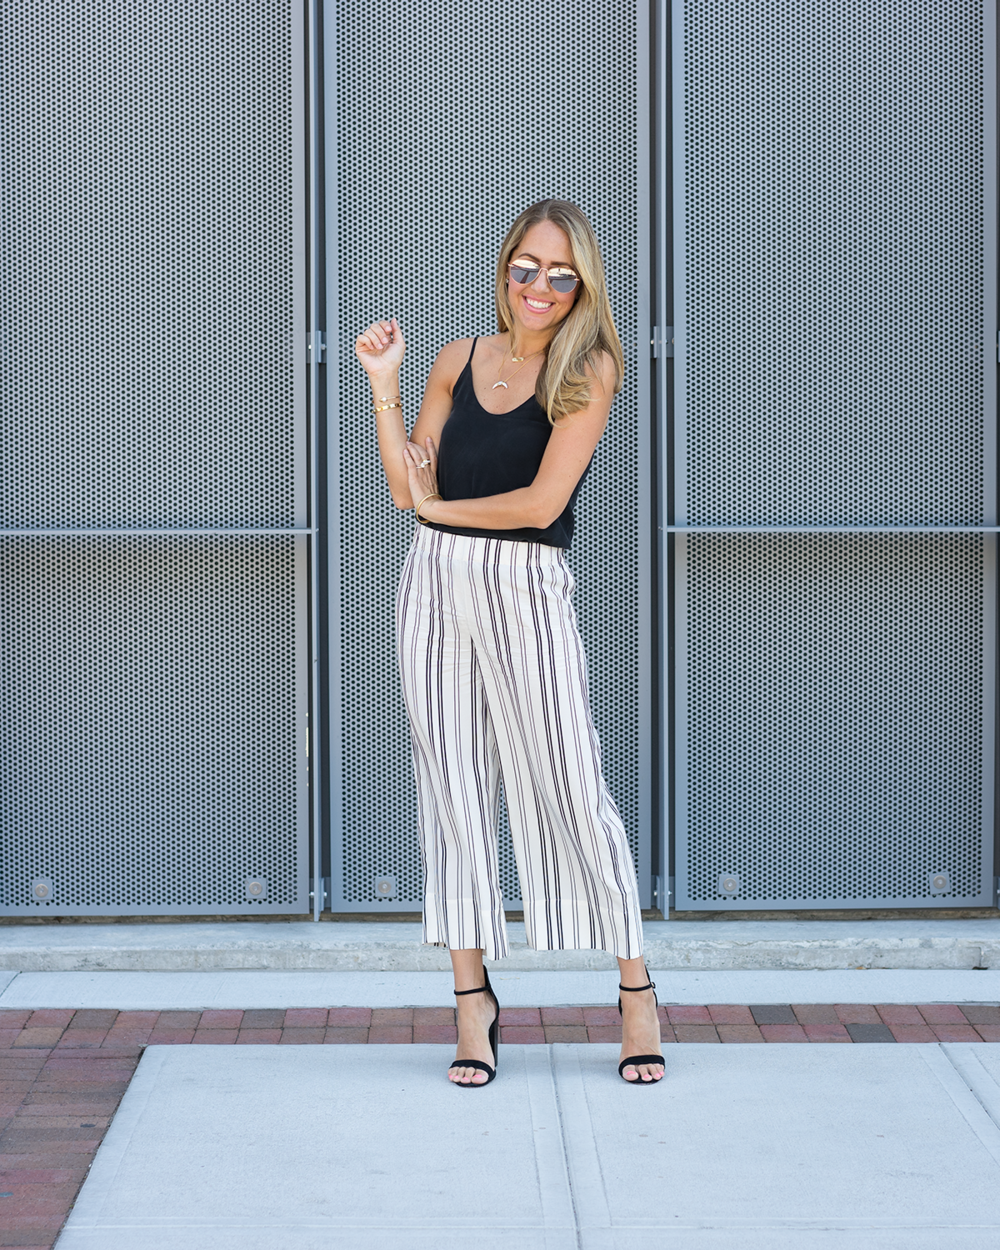 Black silk cami, stripe pants from Everlane